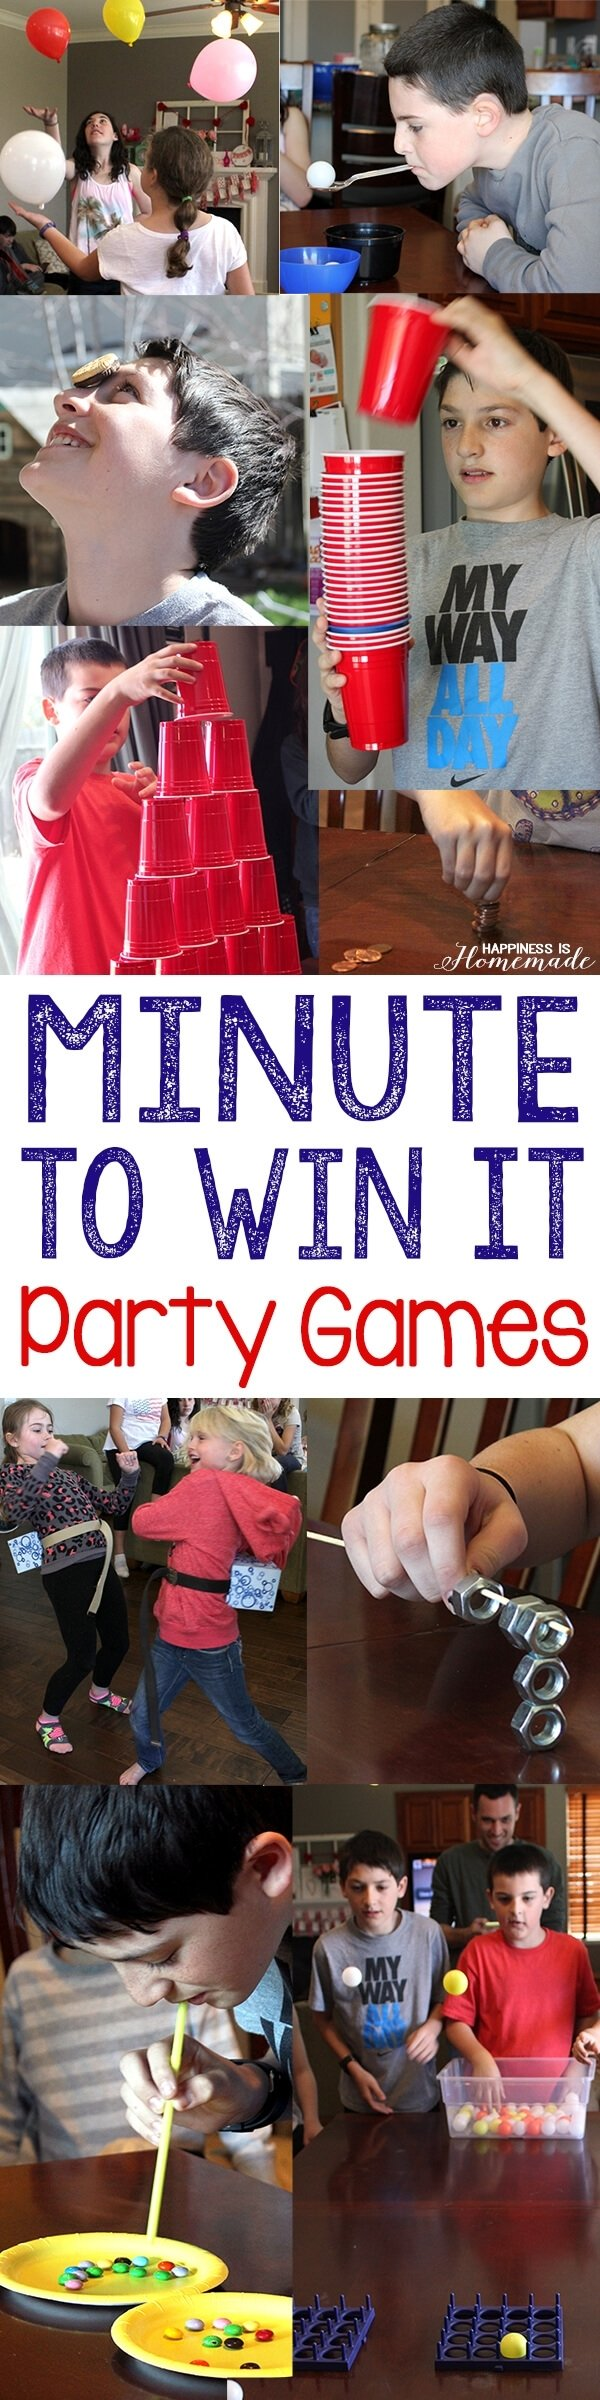 10 Attractive Minute To Win It Party Ideas 10 awesome minute to win it party games happiness is homemade 3 2020